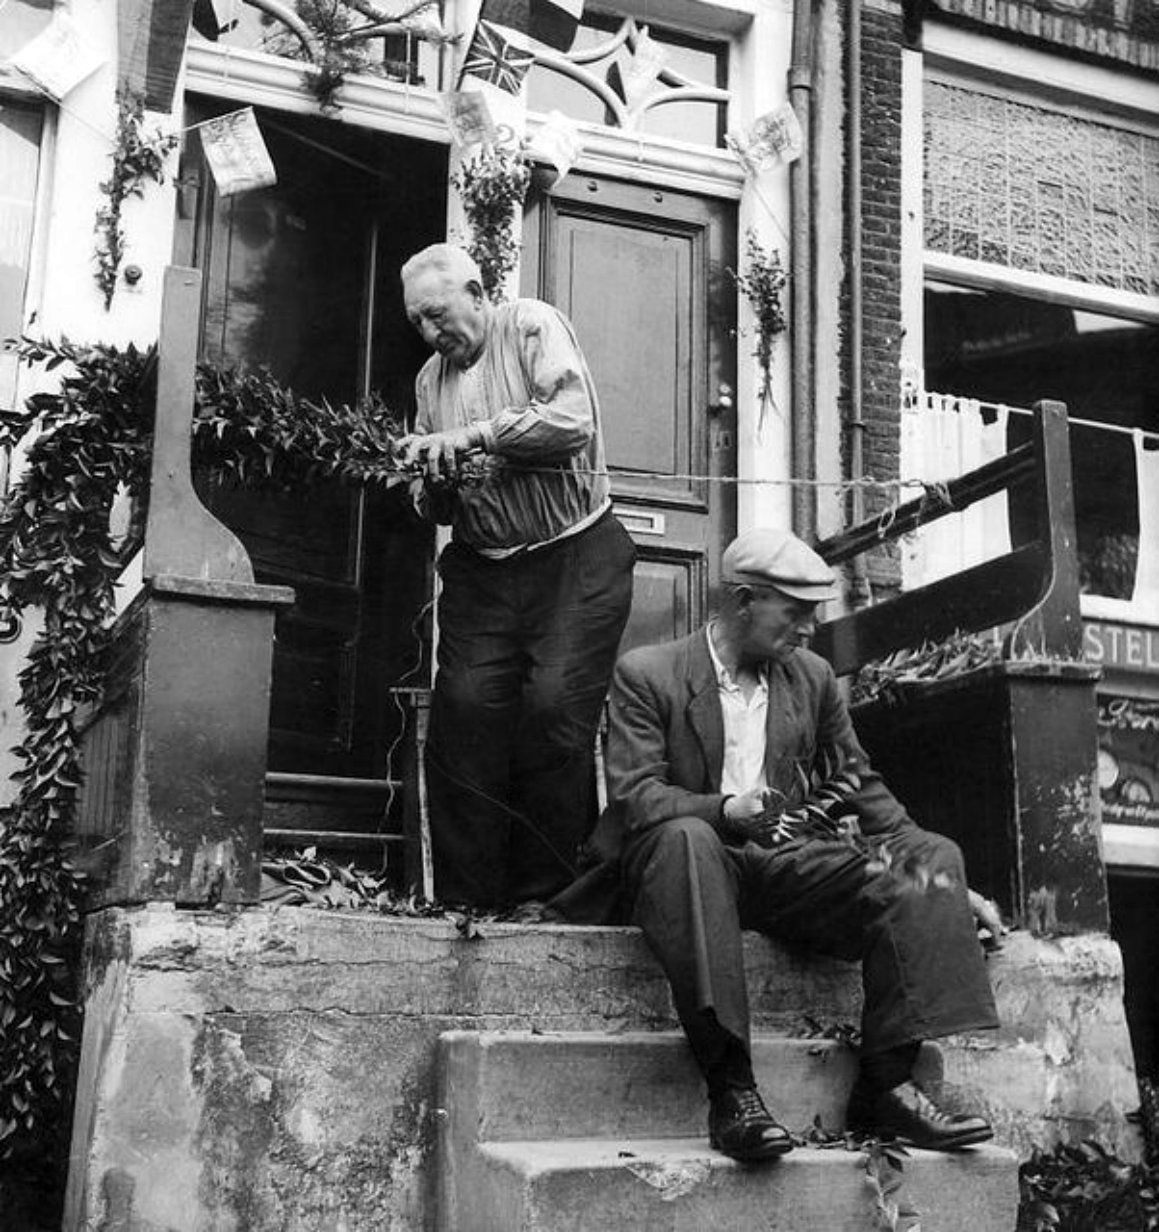 Two elderly Dutch men anticipate the arrival of Allied forces in Amsterdam by decorating their stoop. An armistice between the Germans and the Allies was signed on 4 May 1945 in Wageningen. A day later, the German garrison would unconditionally surrender in the Netherlands. However, some German pockets of resistance remained; on 7 May 1945, two days after German capitulation in the Netherlands, thousands of Dutch civilians were waiting for Canadian troops to arrive at Dam Square in…